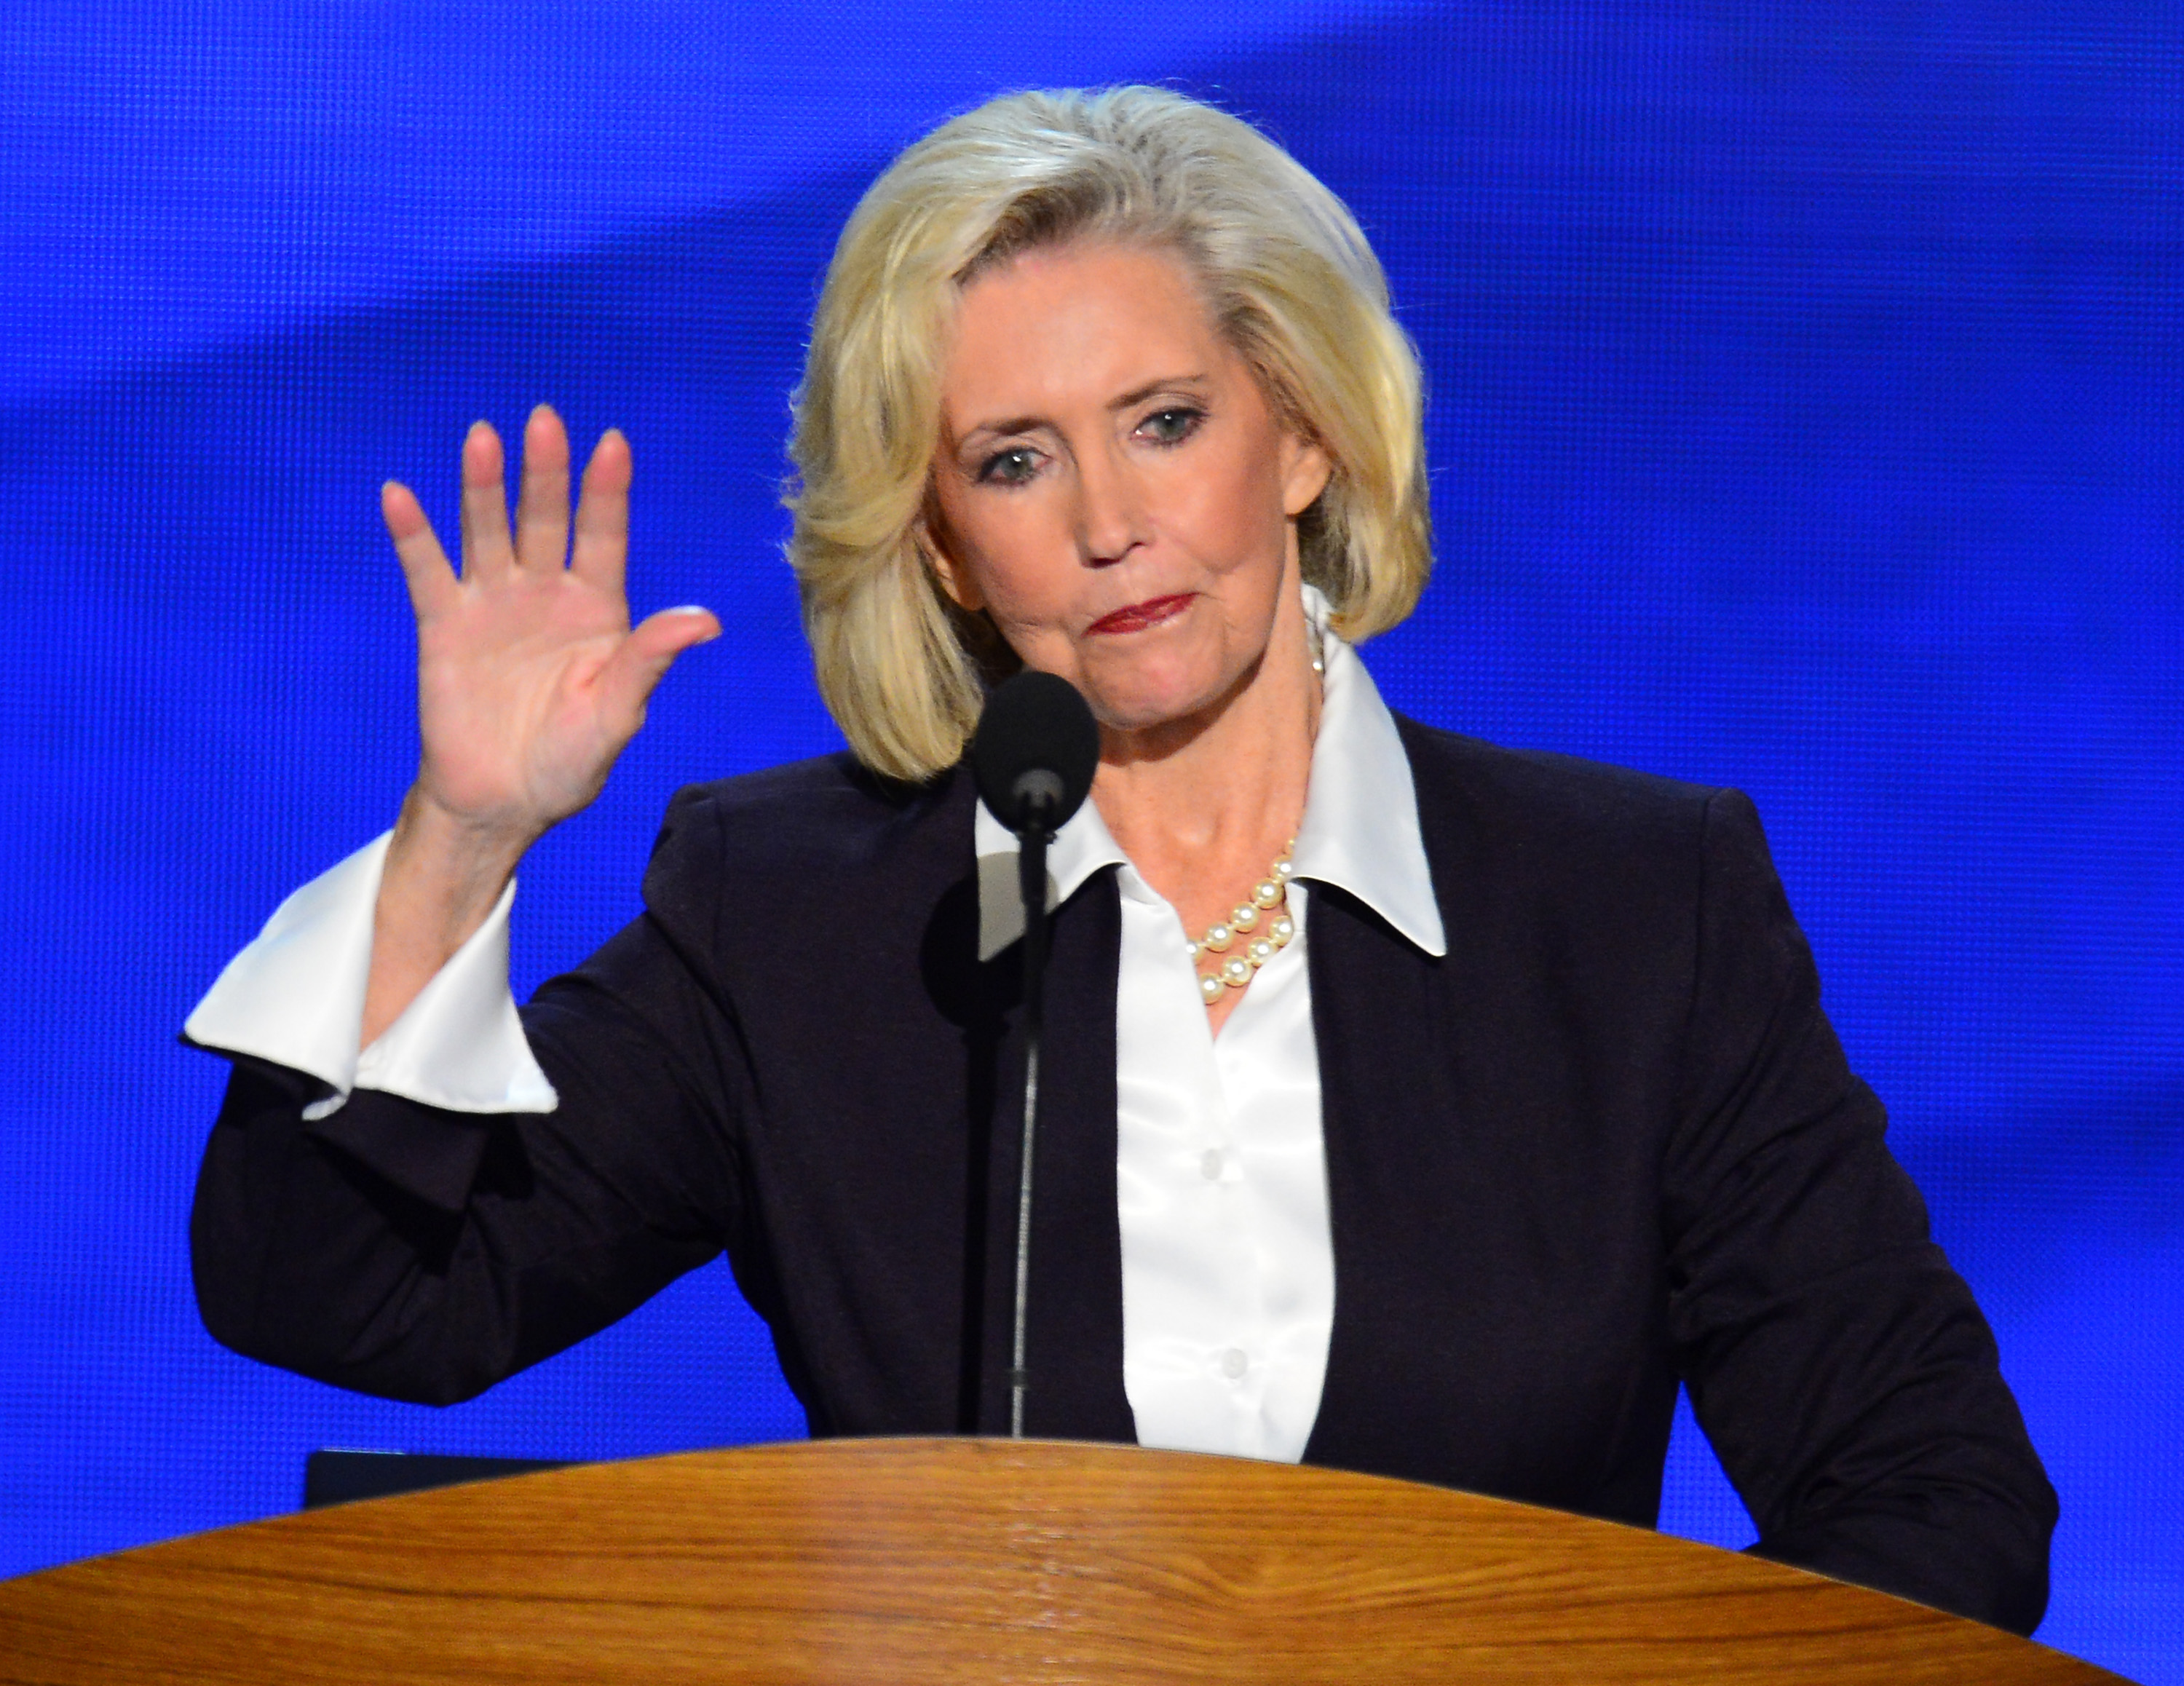 Lilly Ledbetter, namesake of the Lilly Ledbetter Fair Pay Act speaks at the 2012 Democratic National Convention at the Time Warner Cable Arena in Charlotte, North Carolina, Tuesday, September 4, 2012.